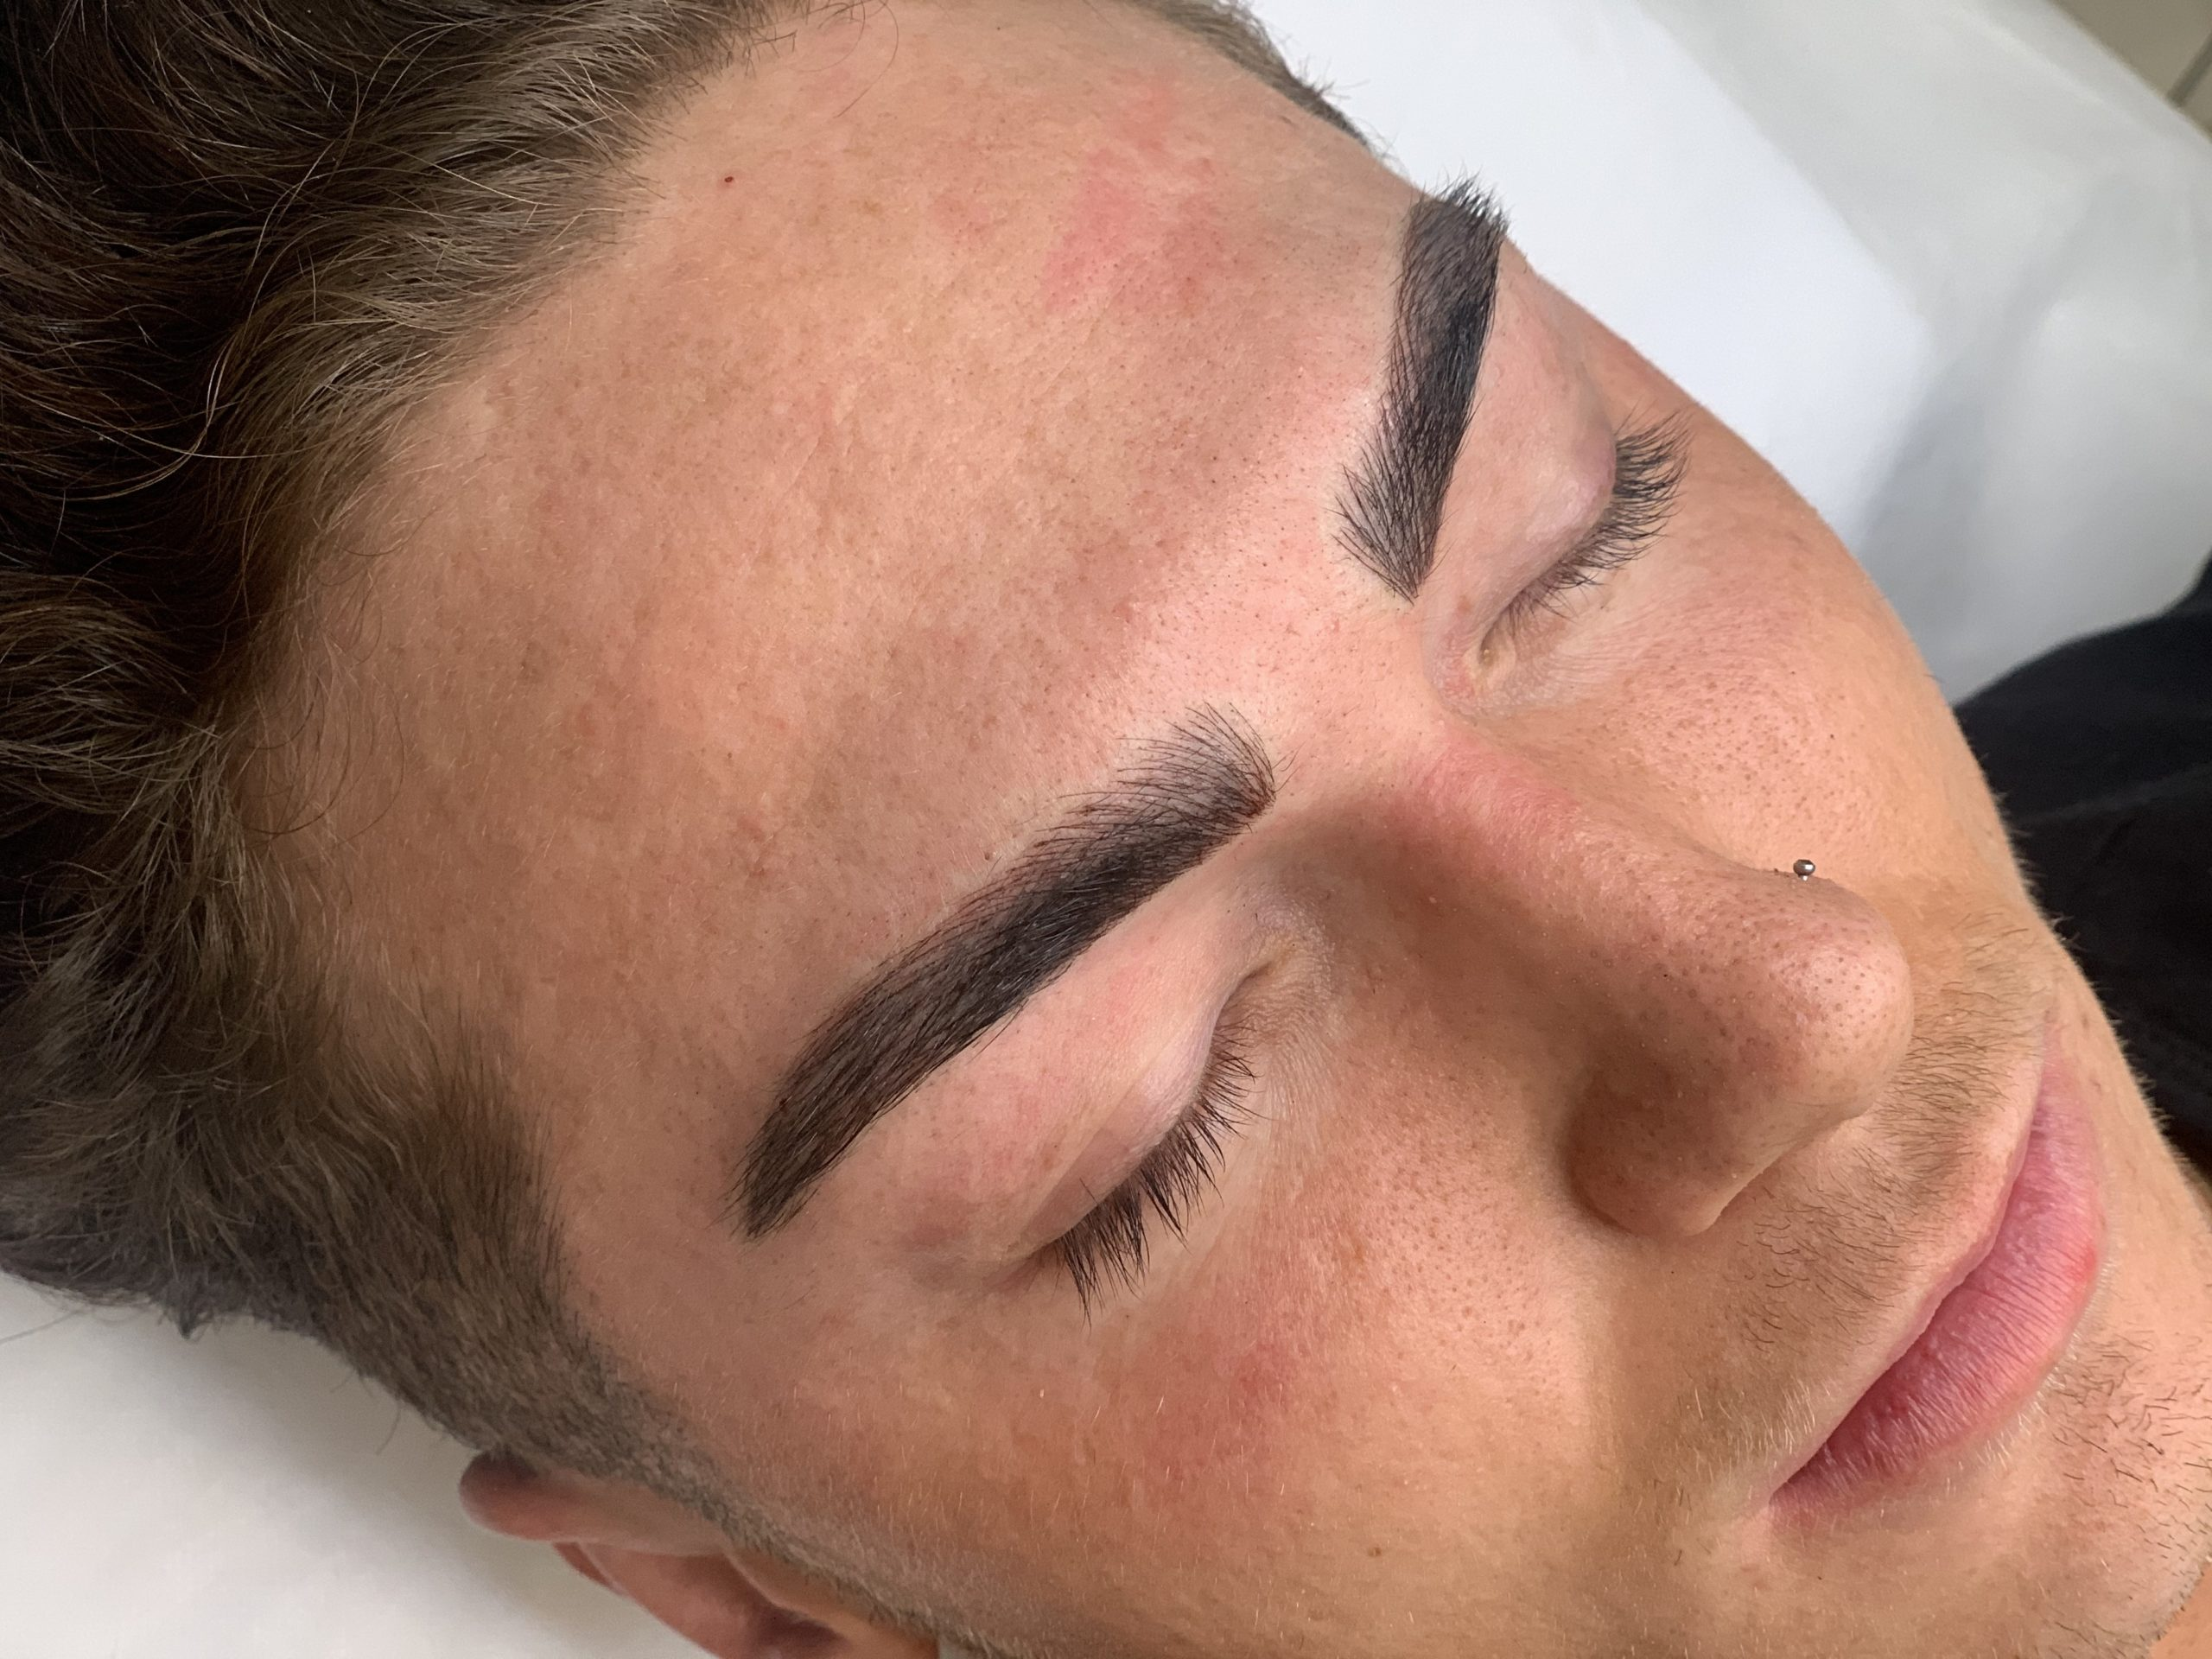 Brow Manscaping: Why Now Is Better Than Ever To Microblade Those Brows